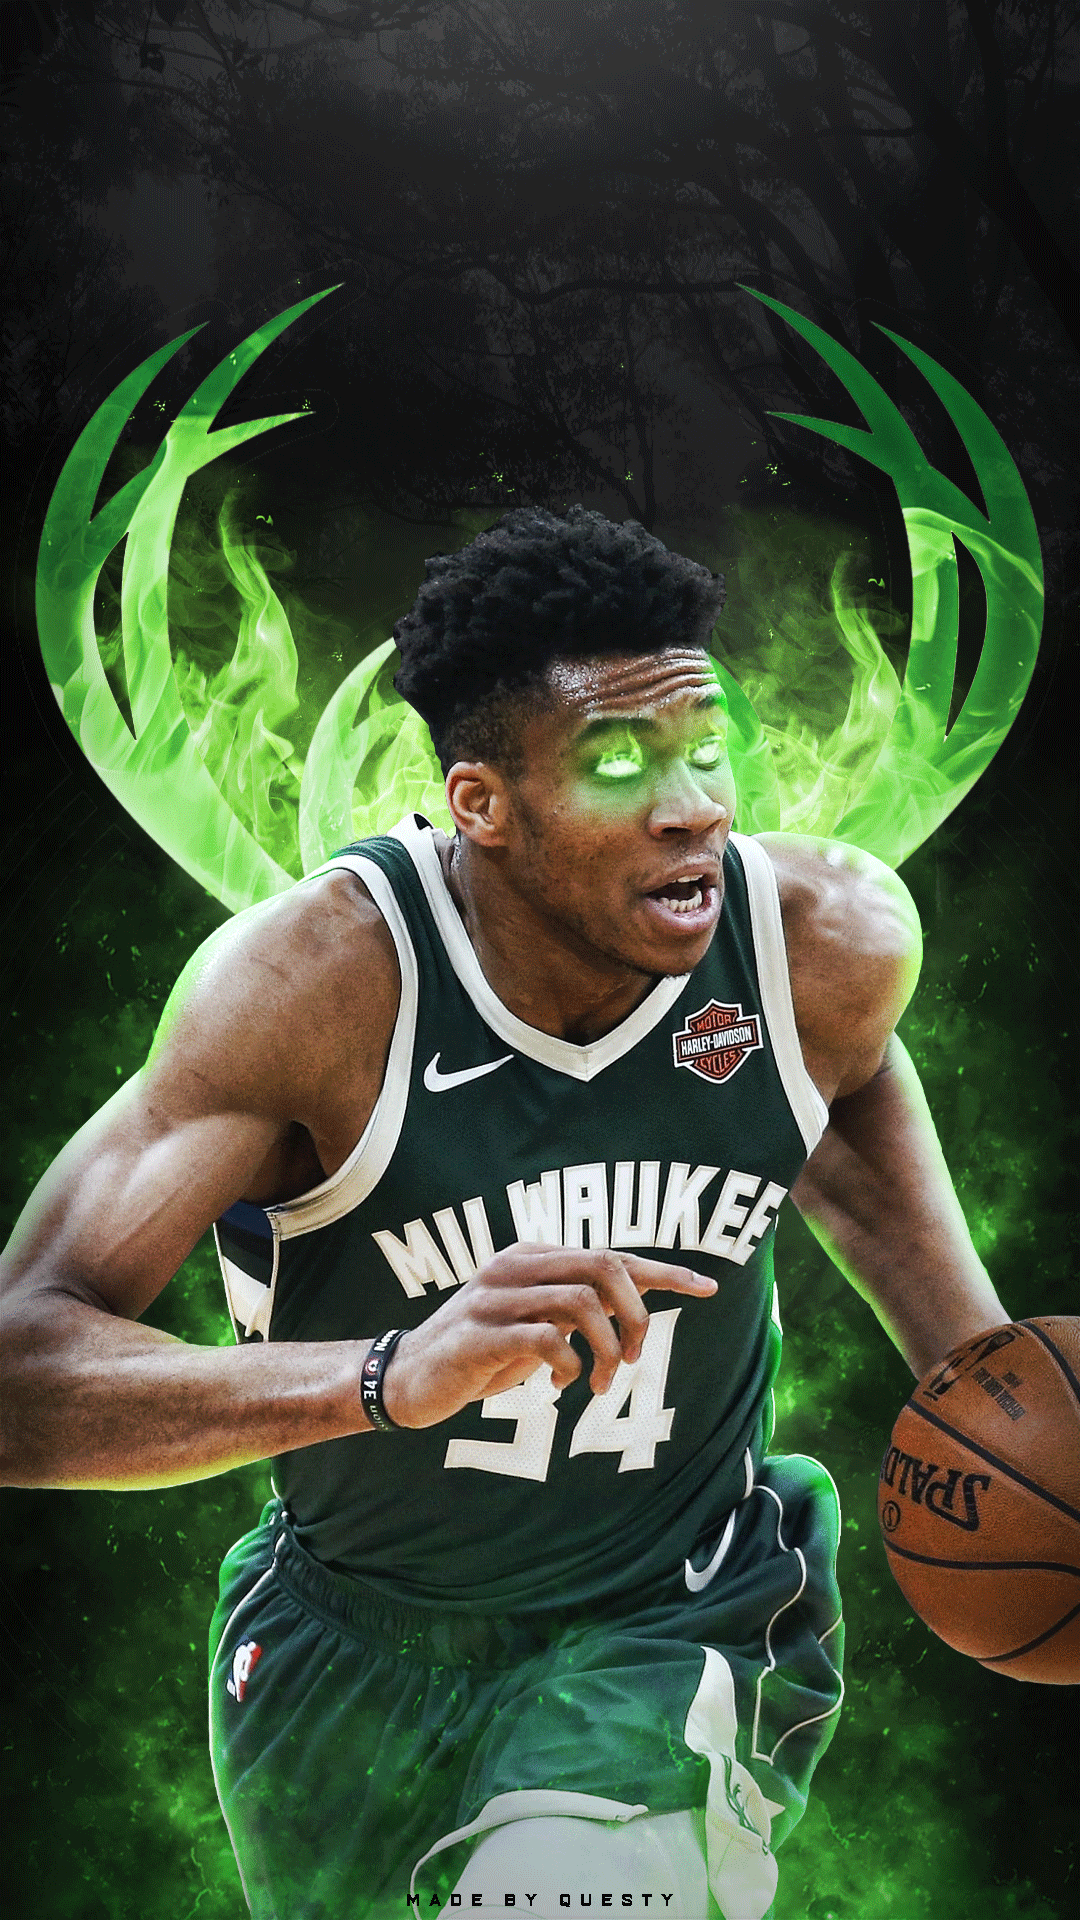 giannis antetokounmpo iphone wallpaper, made by QuestyTv